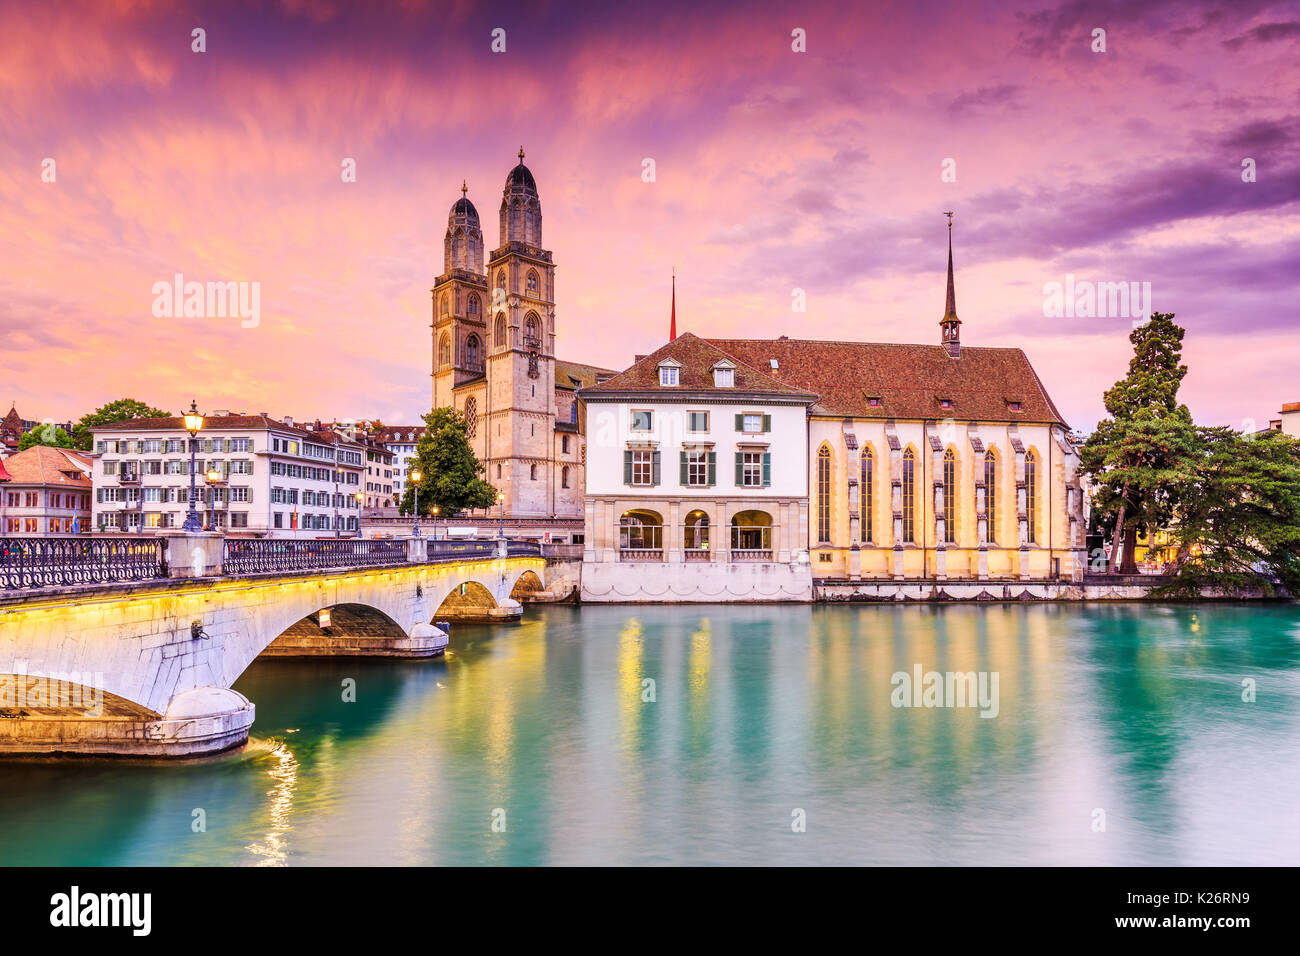 Zurich, Switzerland. View of the historic city center with famous Grossmunster Church, on the Limmat river. - Stock Image